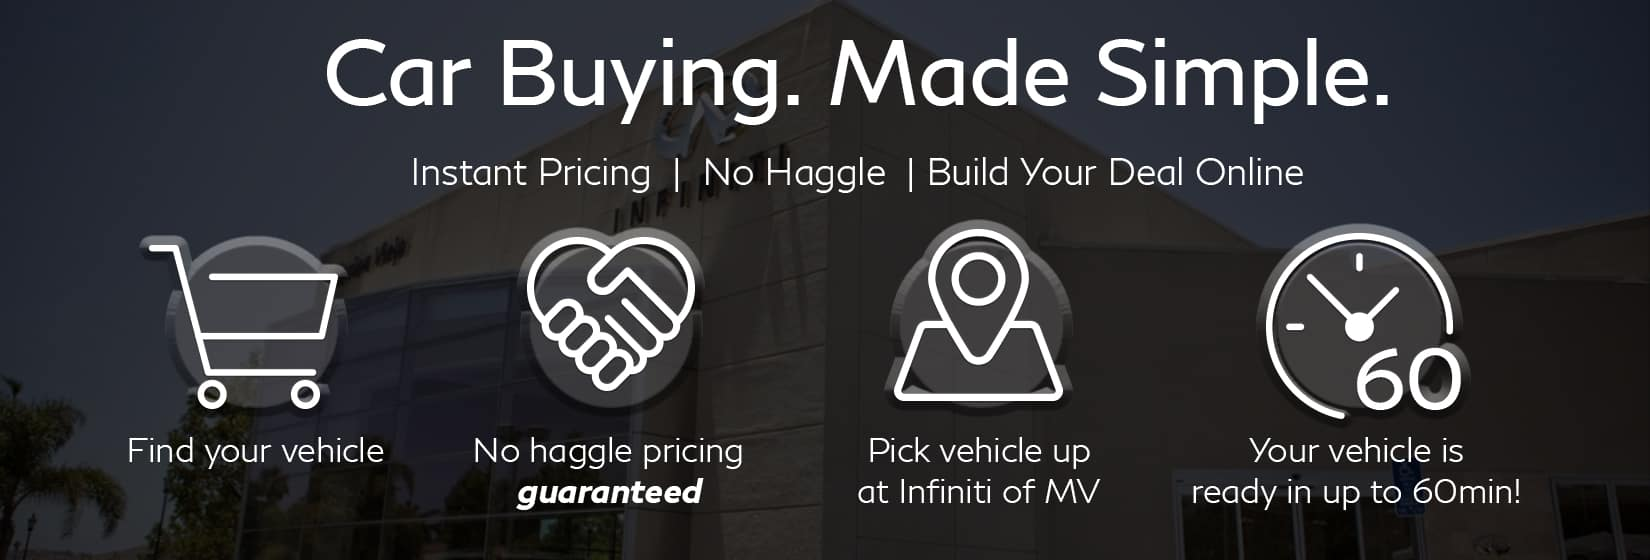 INFINITI of Mission Viejo is Home of the No Haggle!